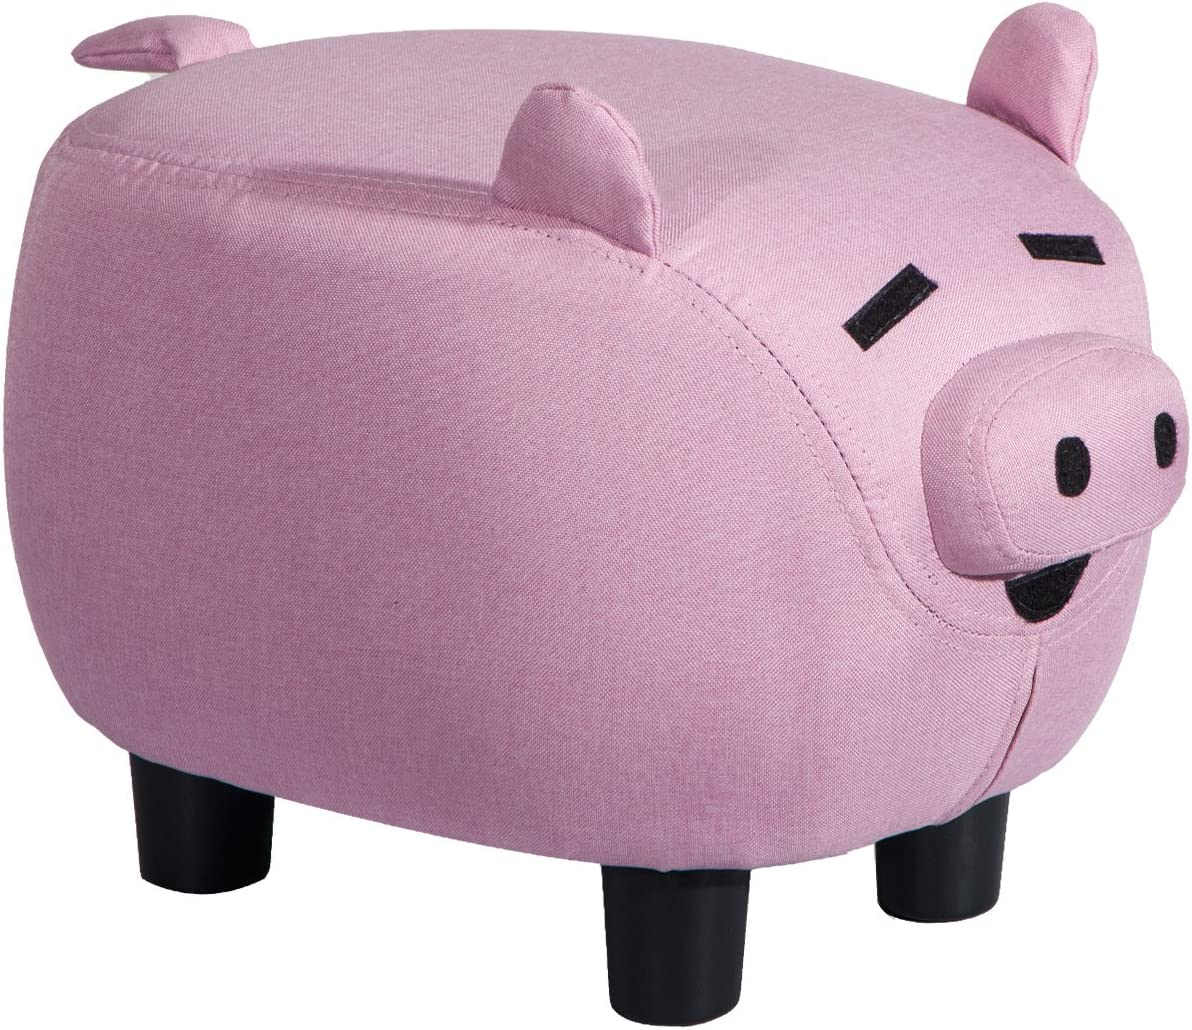 Pink Storage Ottoman Foot Stool, 13 Height Pig Shaped Upholstered Ride-on Pouf, Easy to Assemble, Retro Style Pink Pig Without Storage